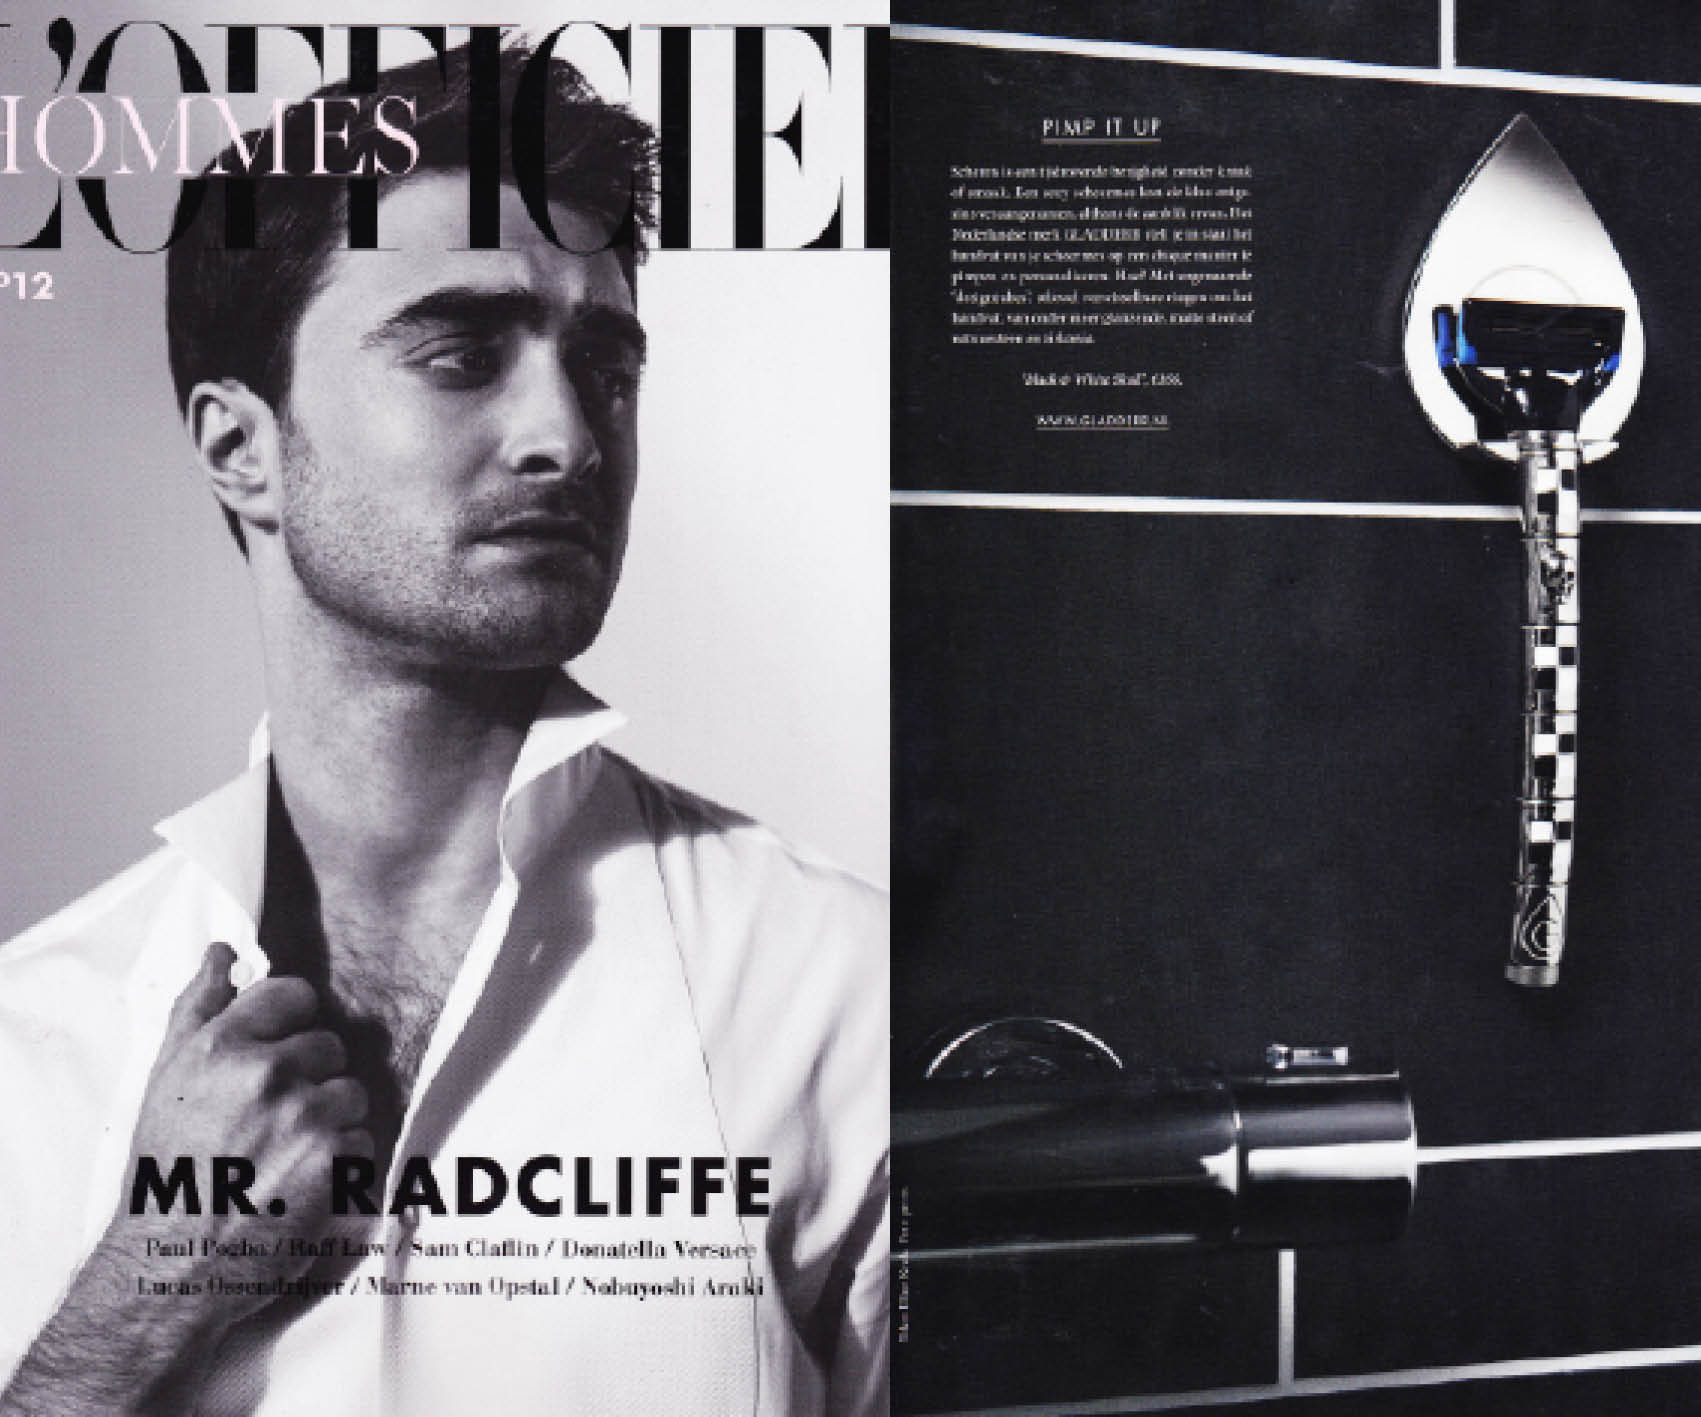 L'Officiel Hommes: Pimp it up